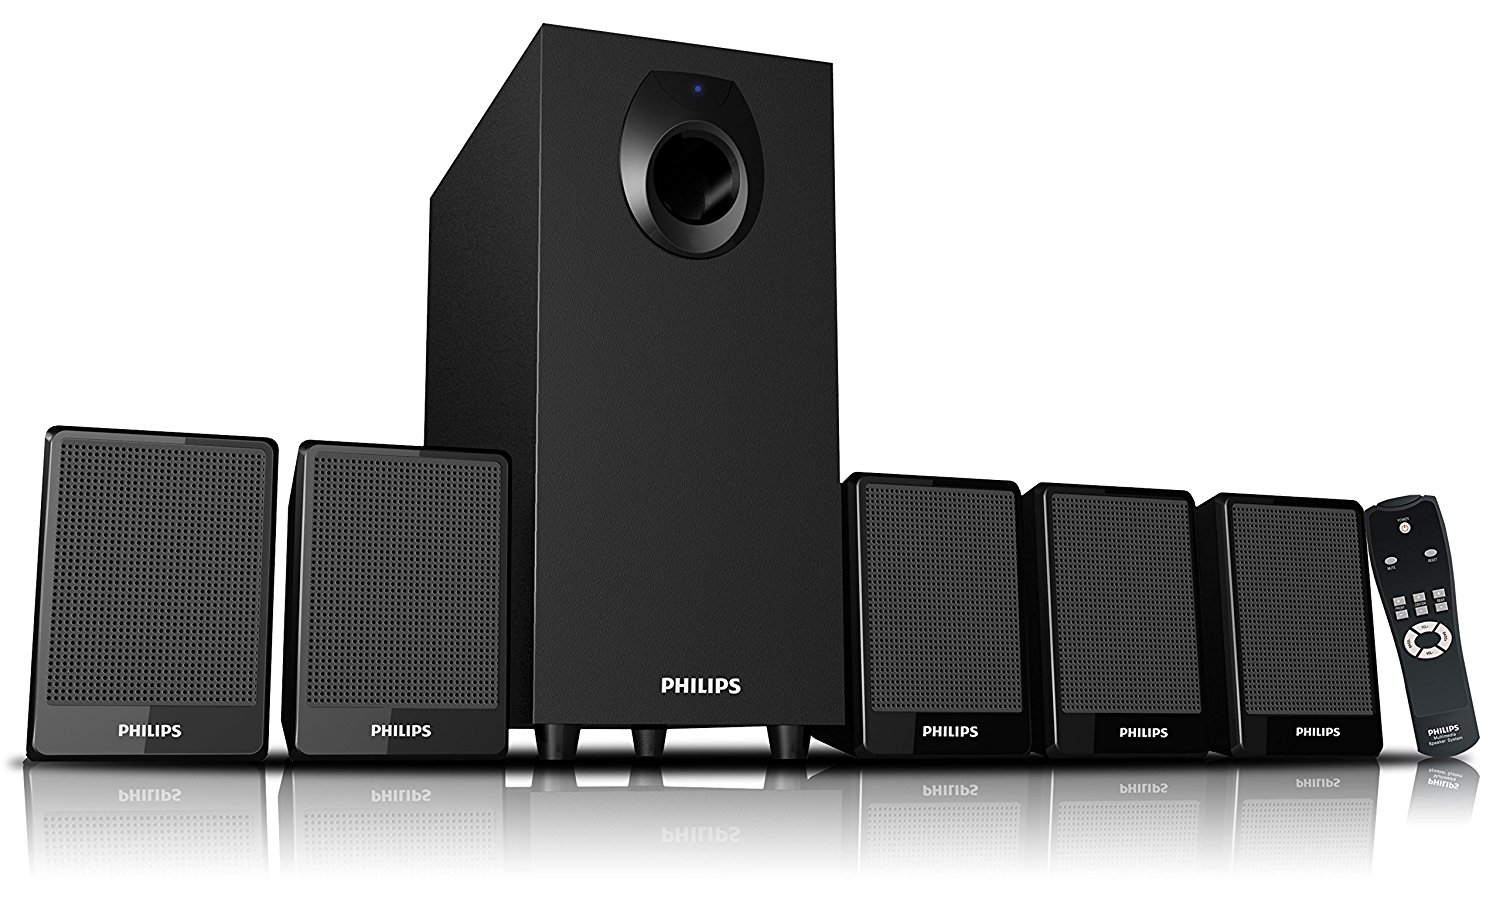 Philips DSP 2800 5.1 Channel Multimedia Speakers